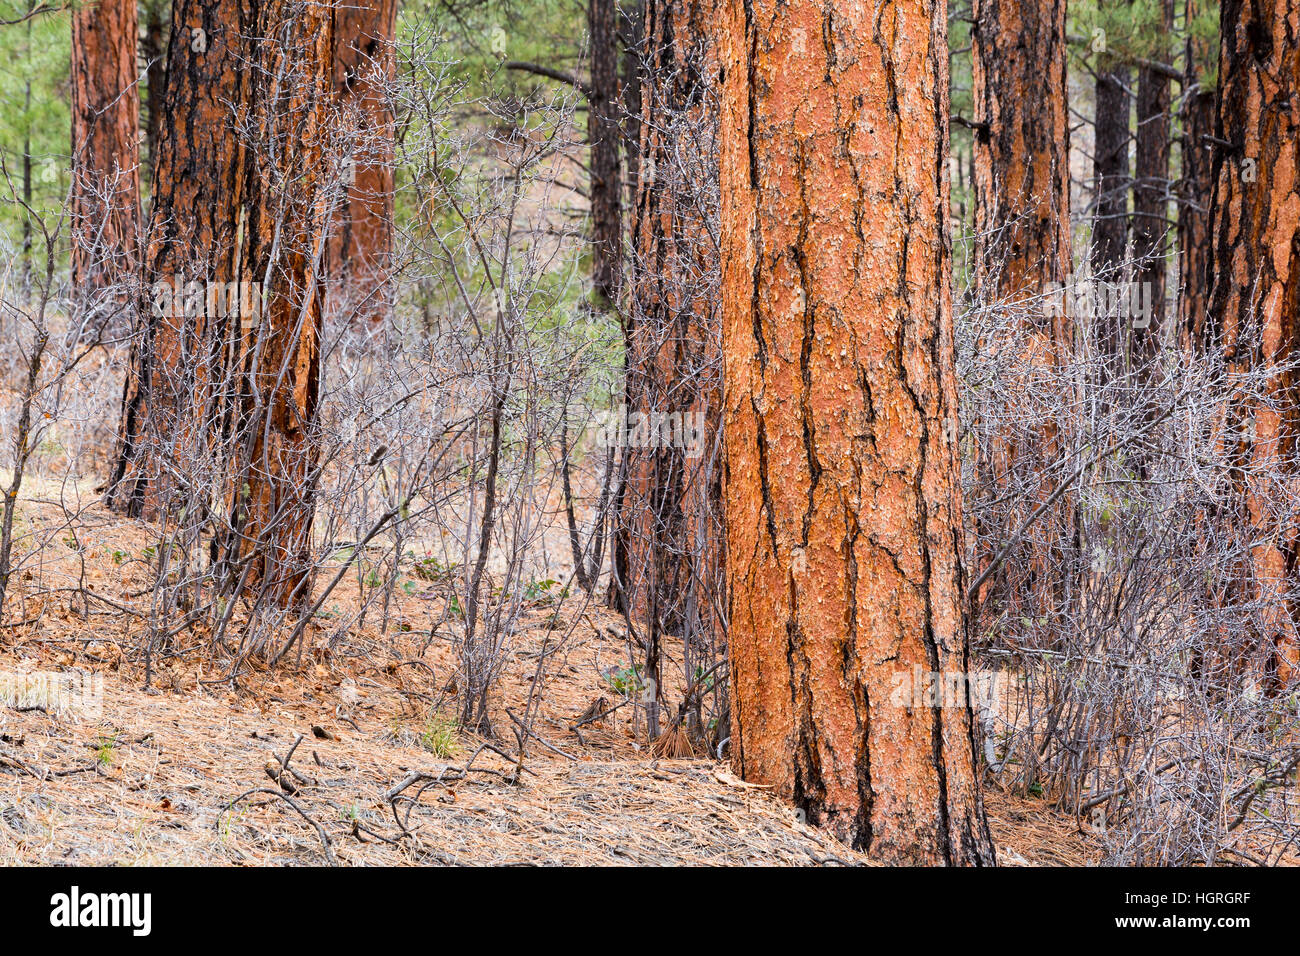 Oak trees scattered between older ponderosa pine tree trunks on the northern Kaibab Plateau. Kaibab National Forest, - Stock Image